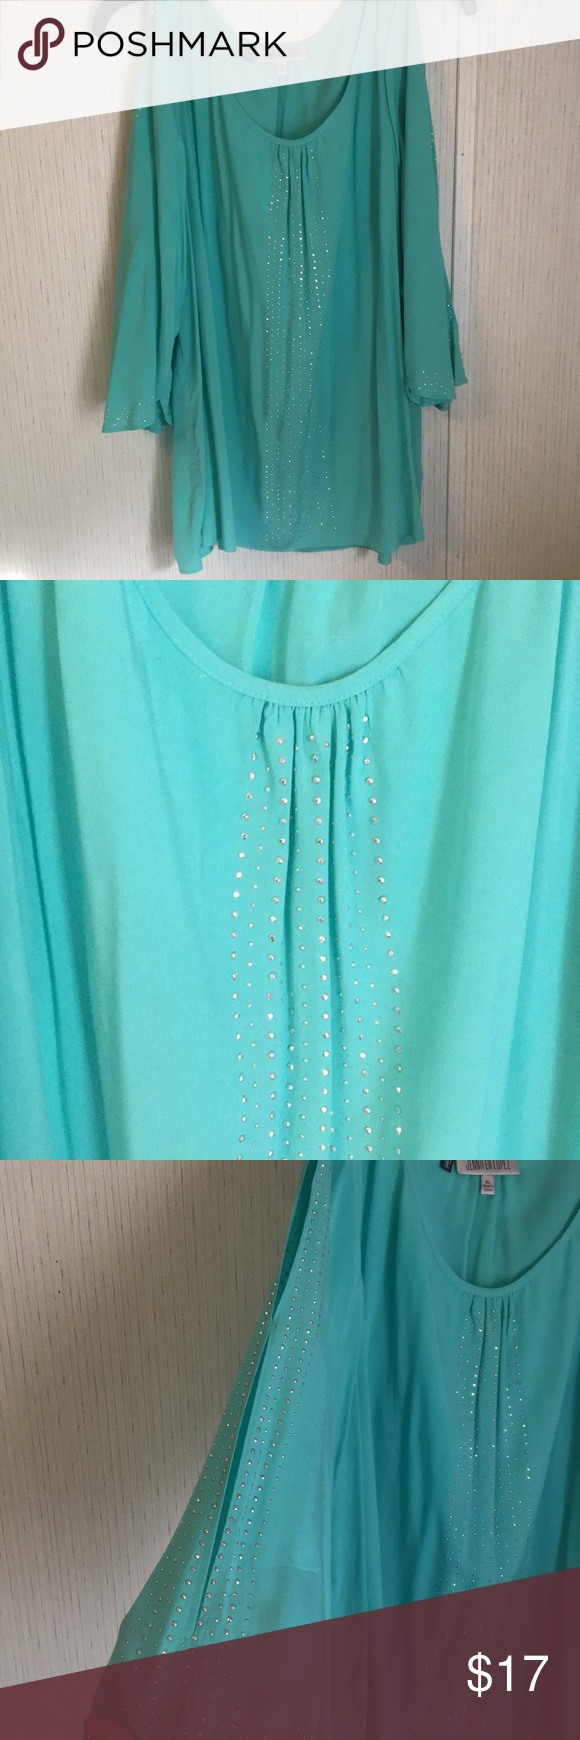 Jennifer Lopez Blouse My Posh Closet Pinterest Blouse Aqua